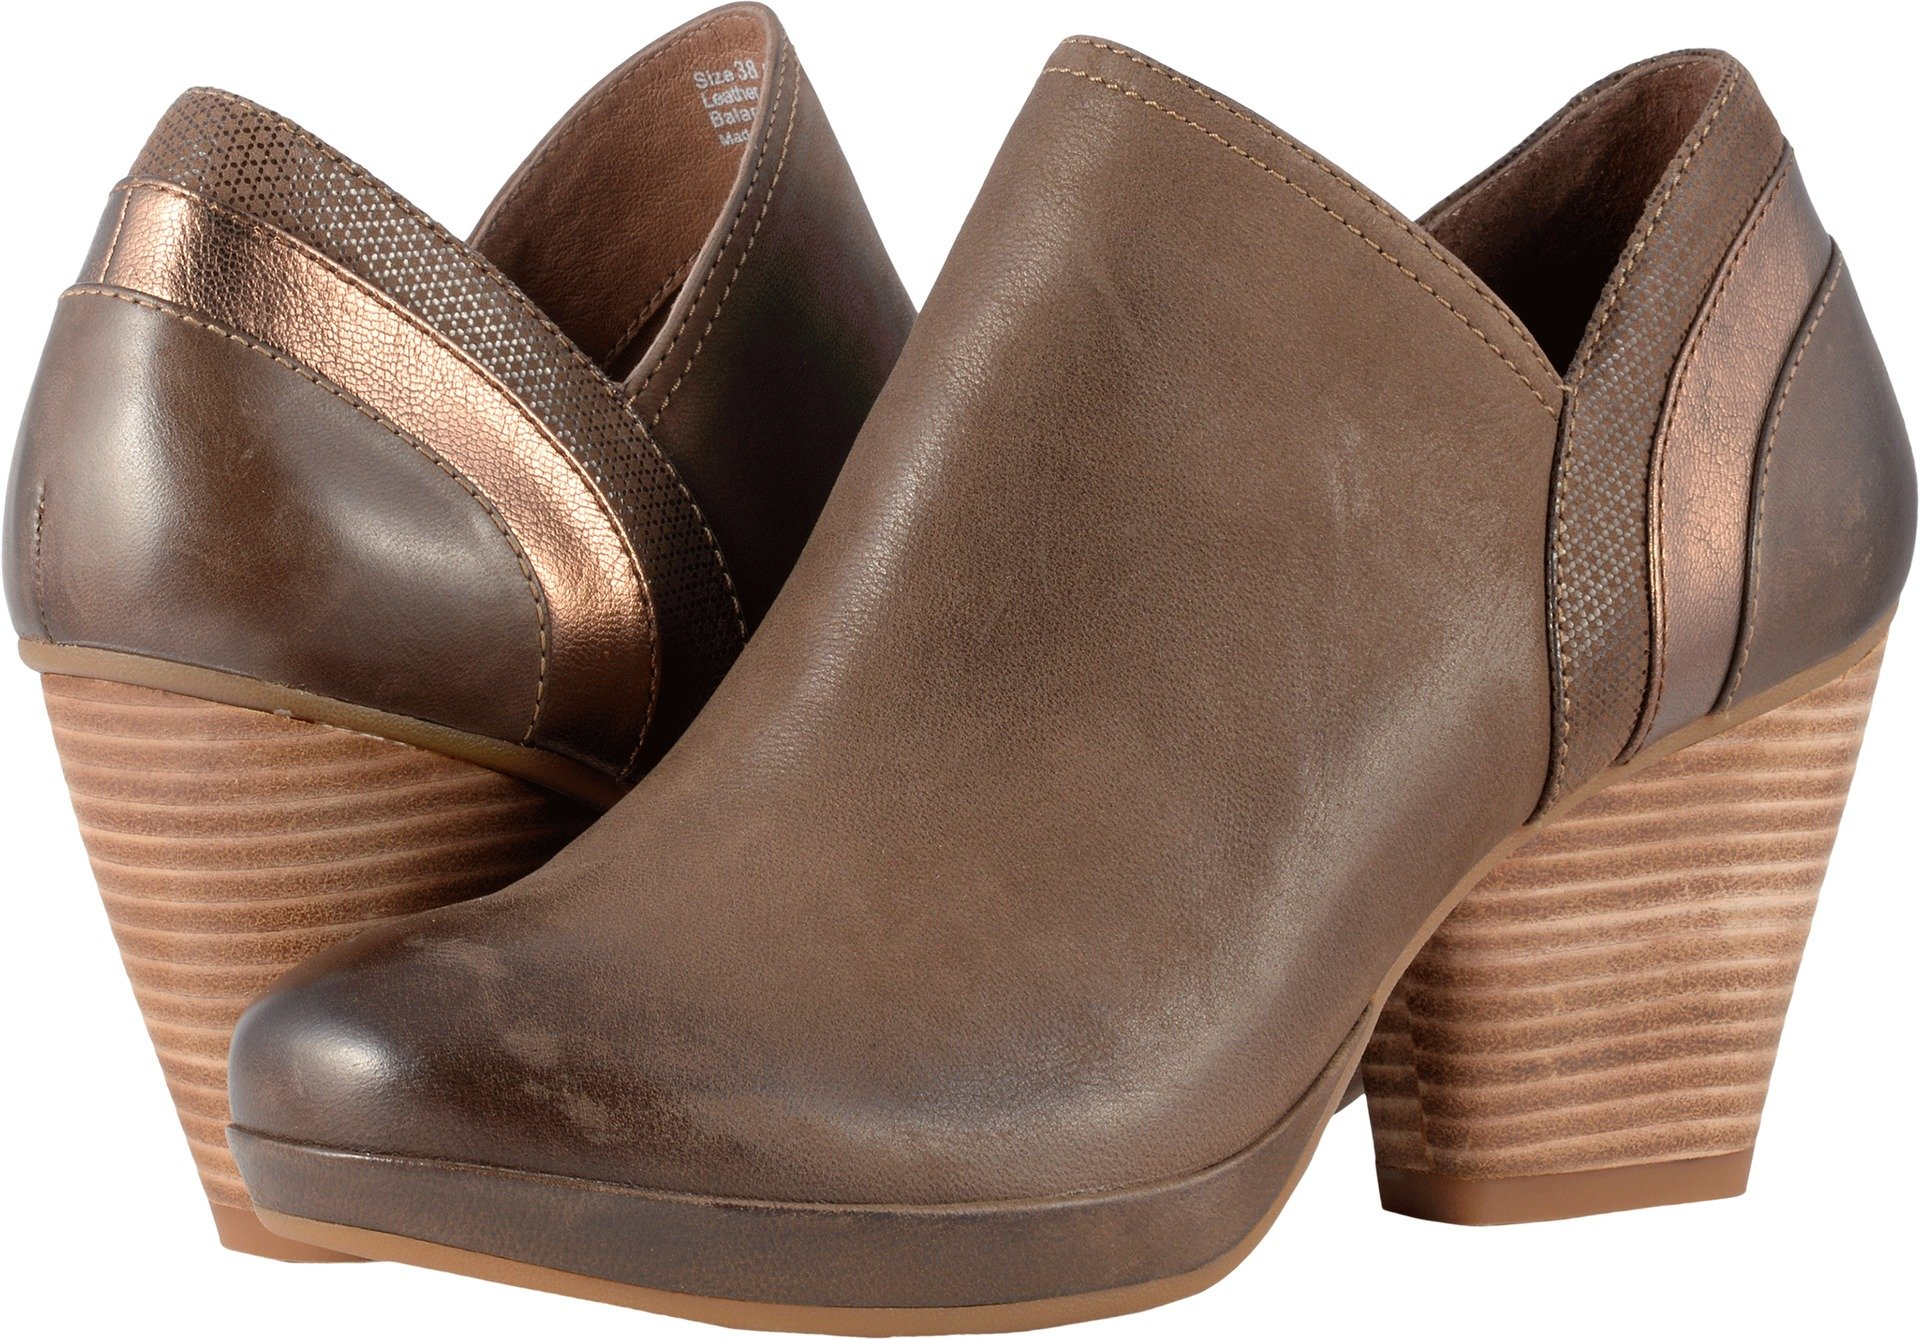 Dansko New Women's Marcia Ankle Boot Teak Burnished Nubuck 39